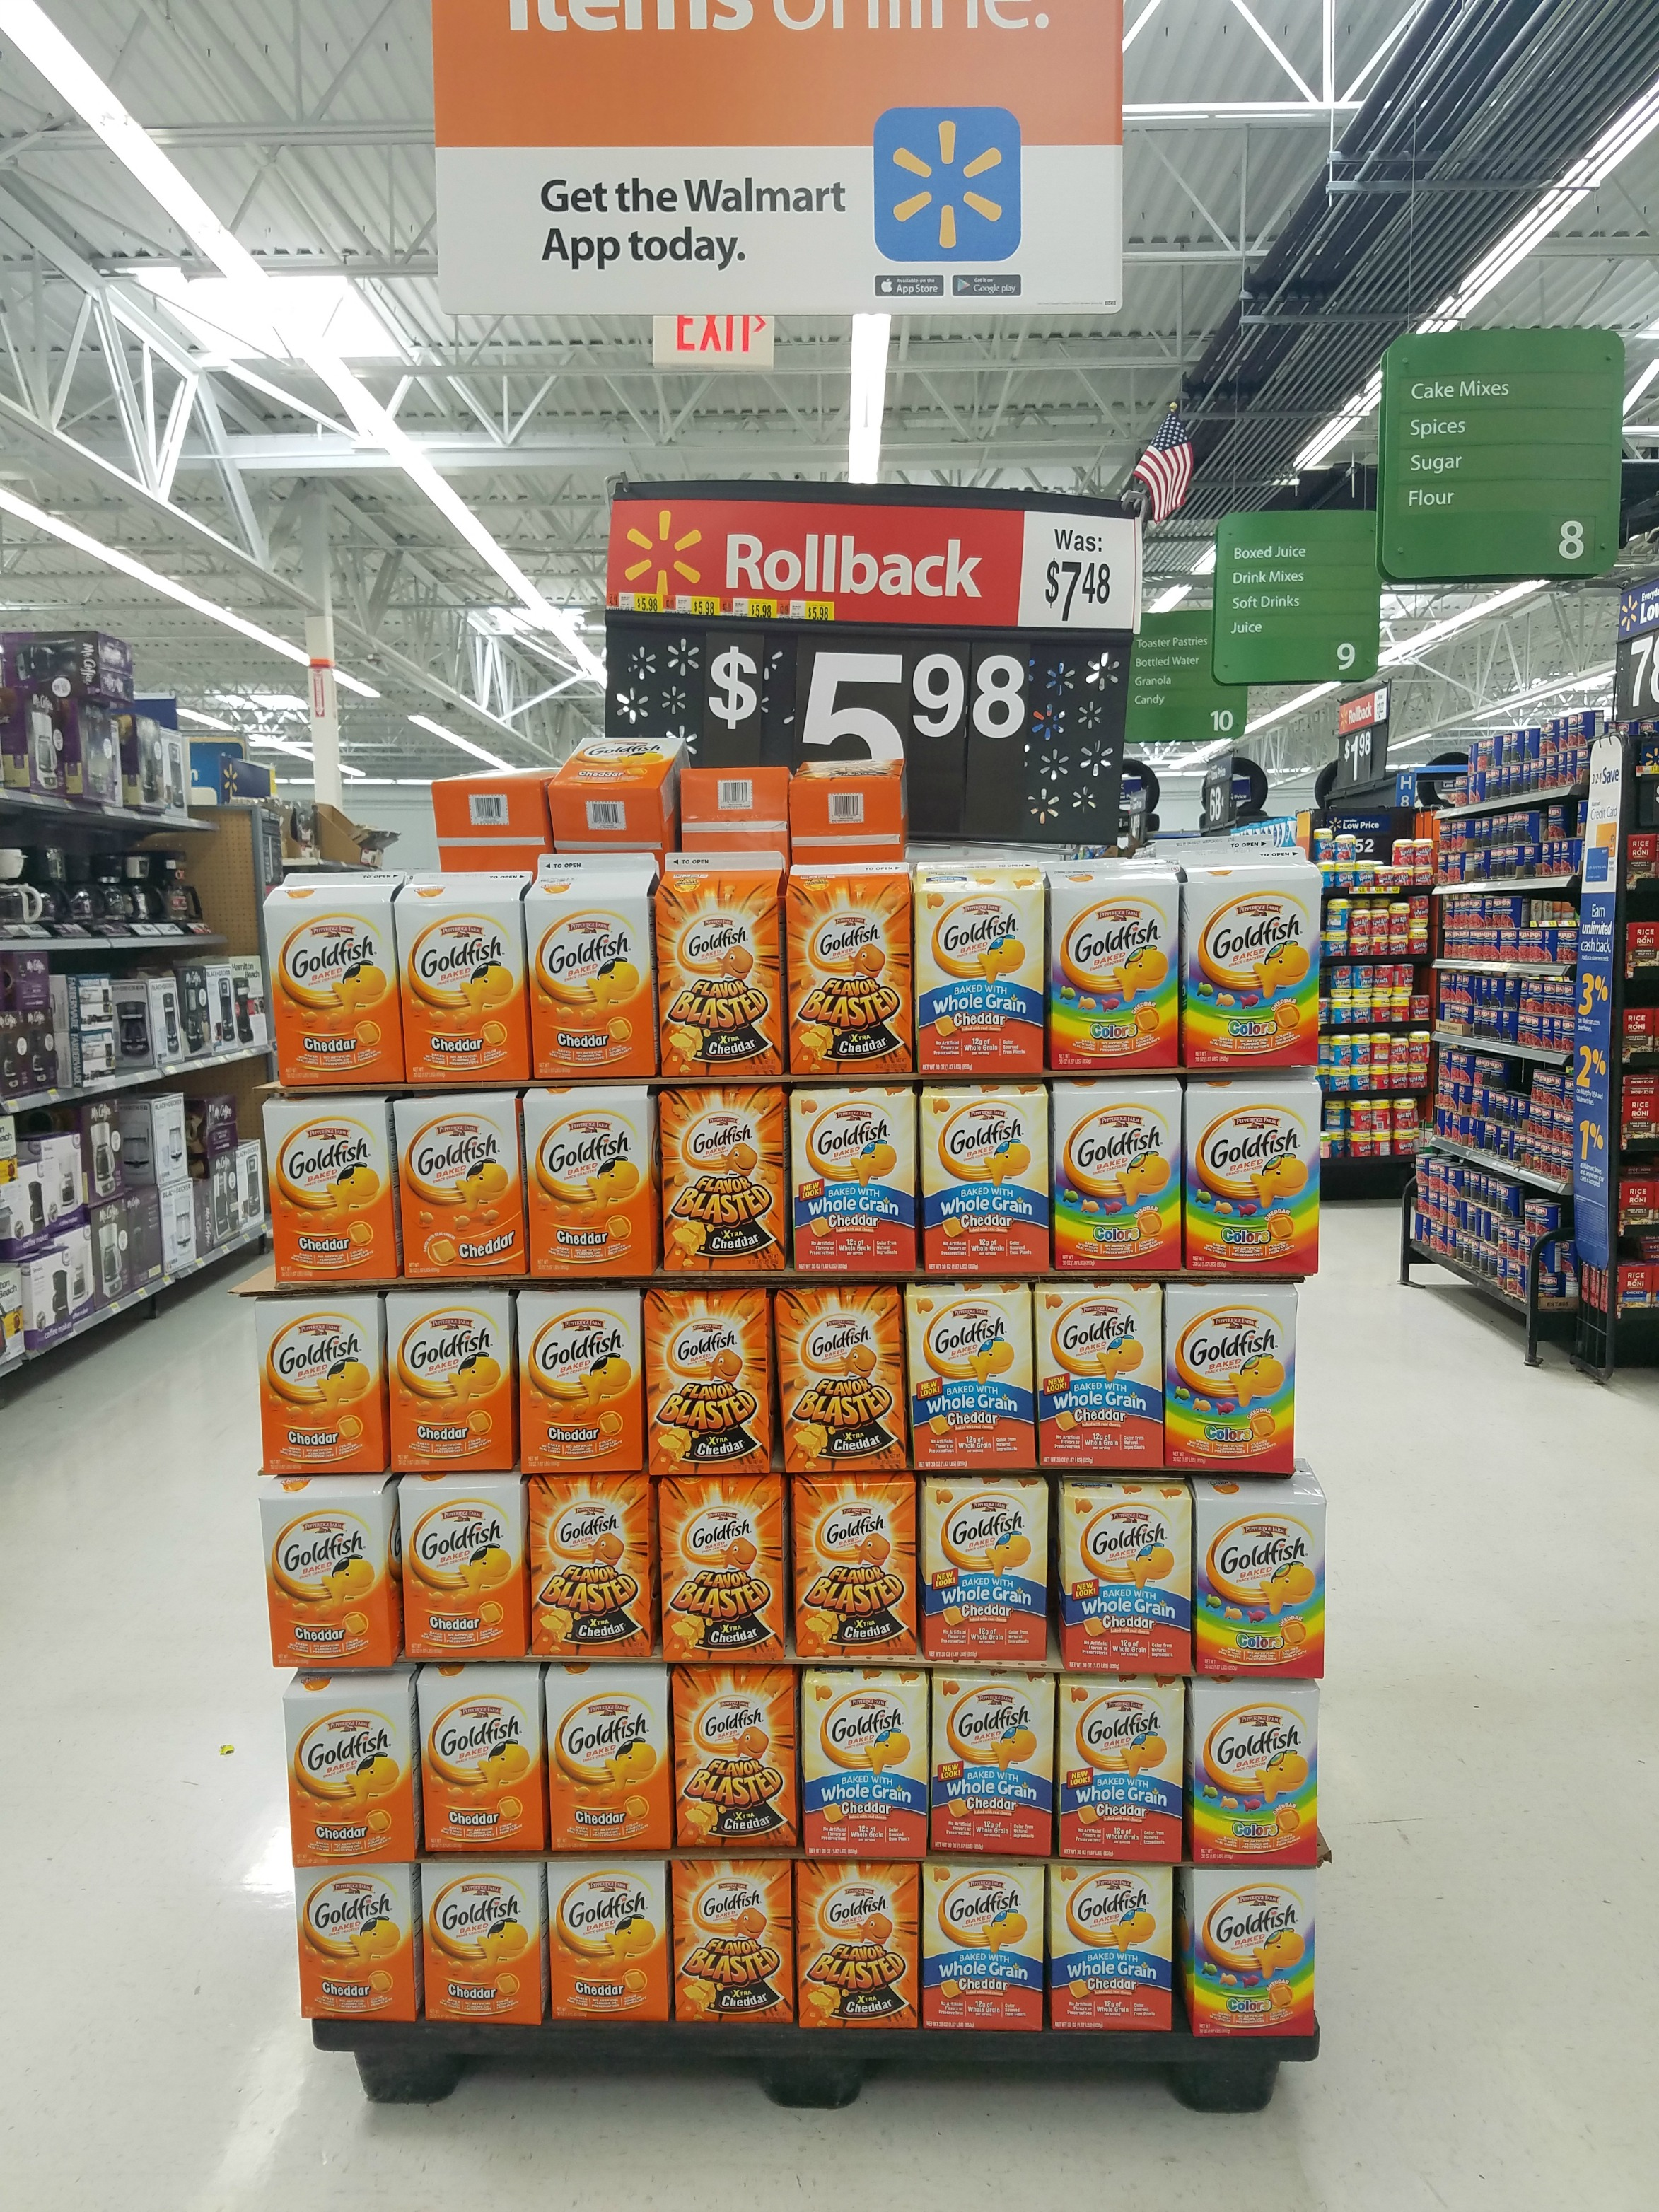 goldfish cracker rollback at Walmart